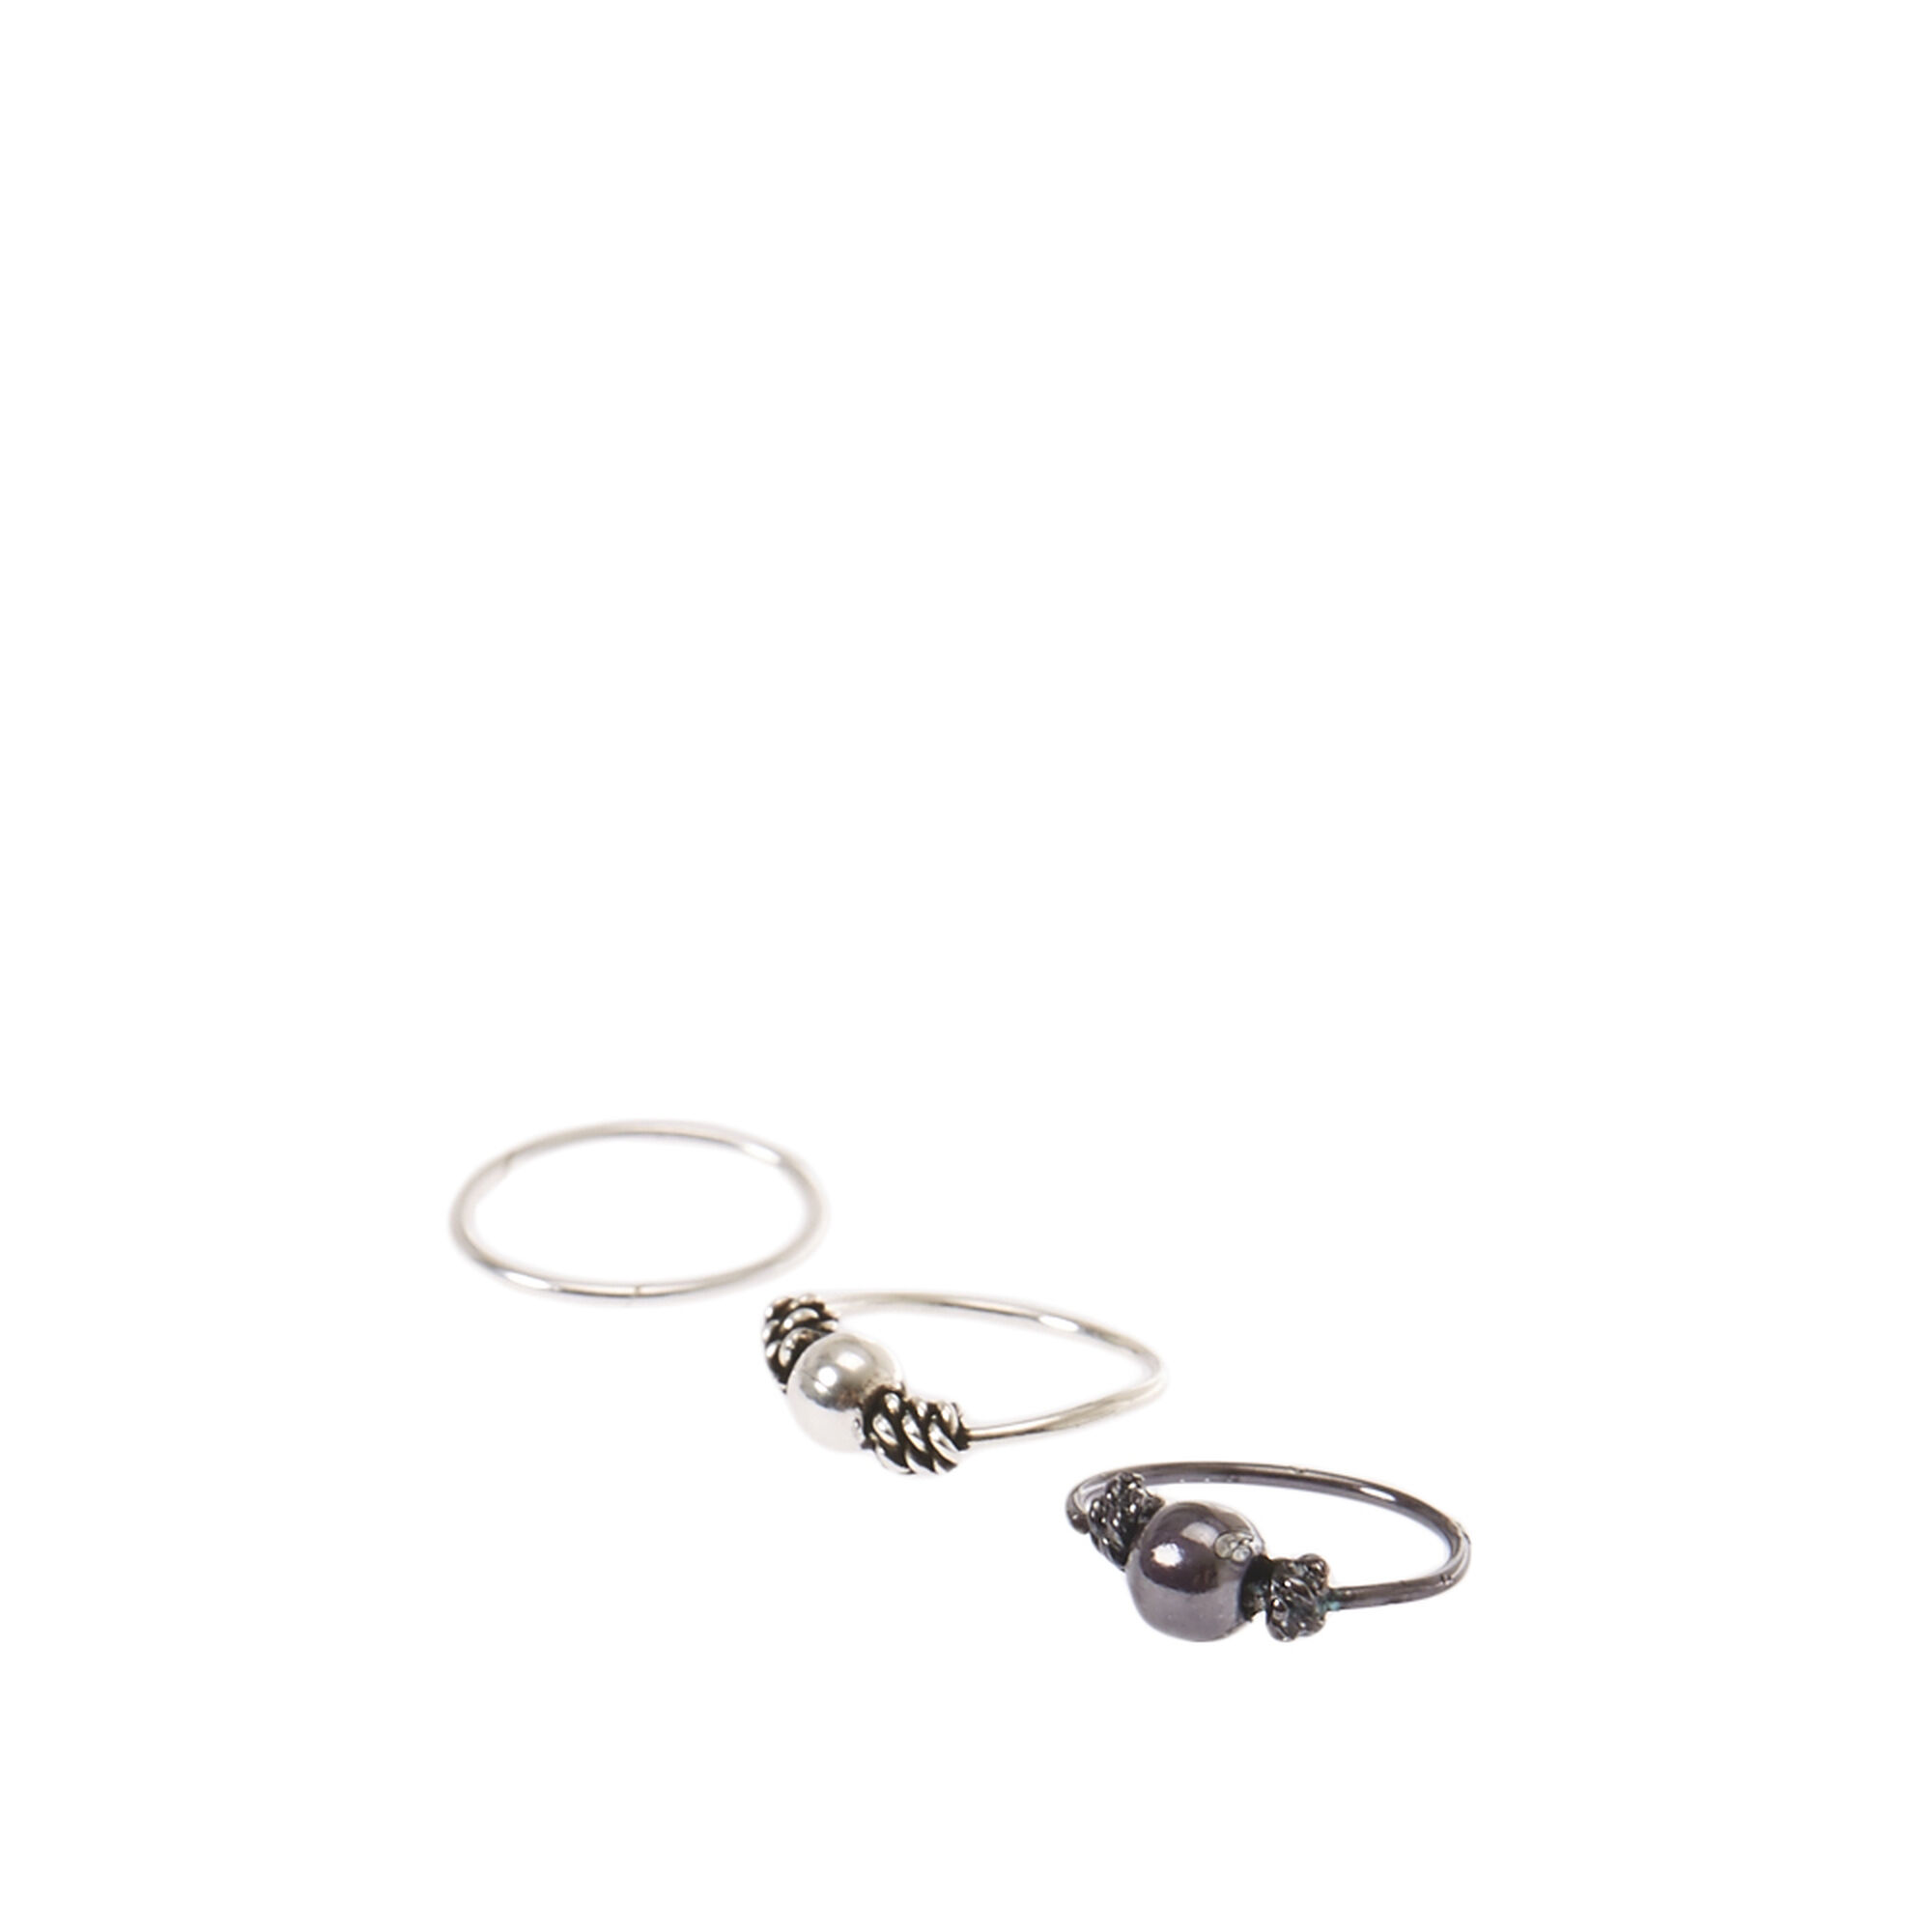 Sterling Silver Mixed Metal Nose Rings 3 Pack Claire S